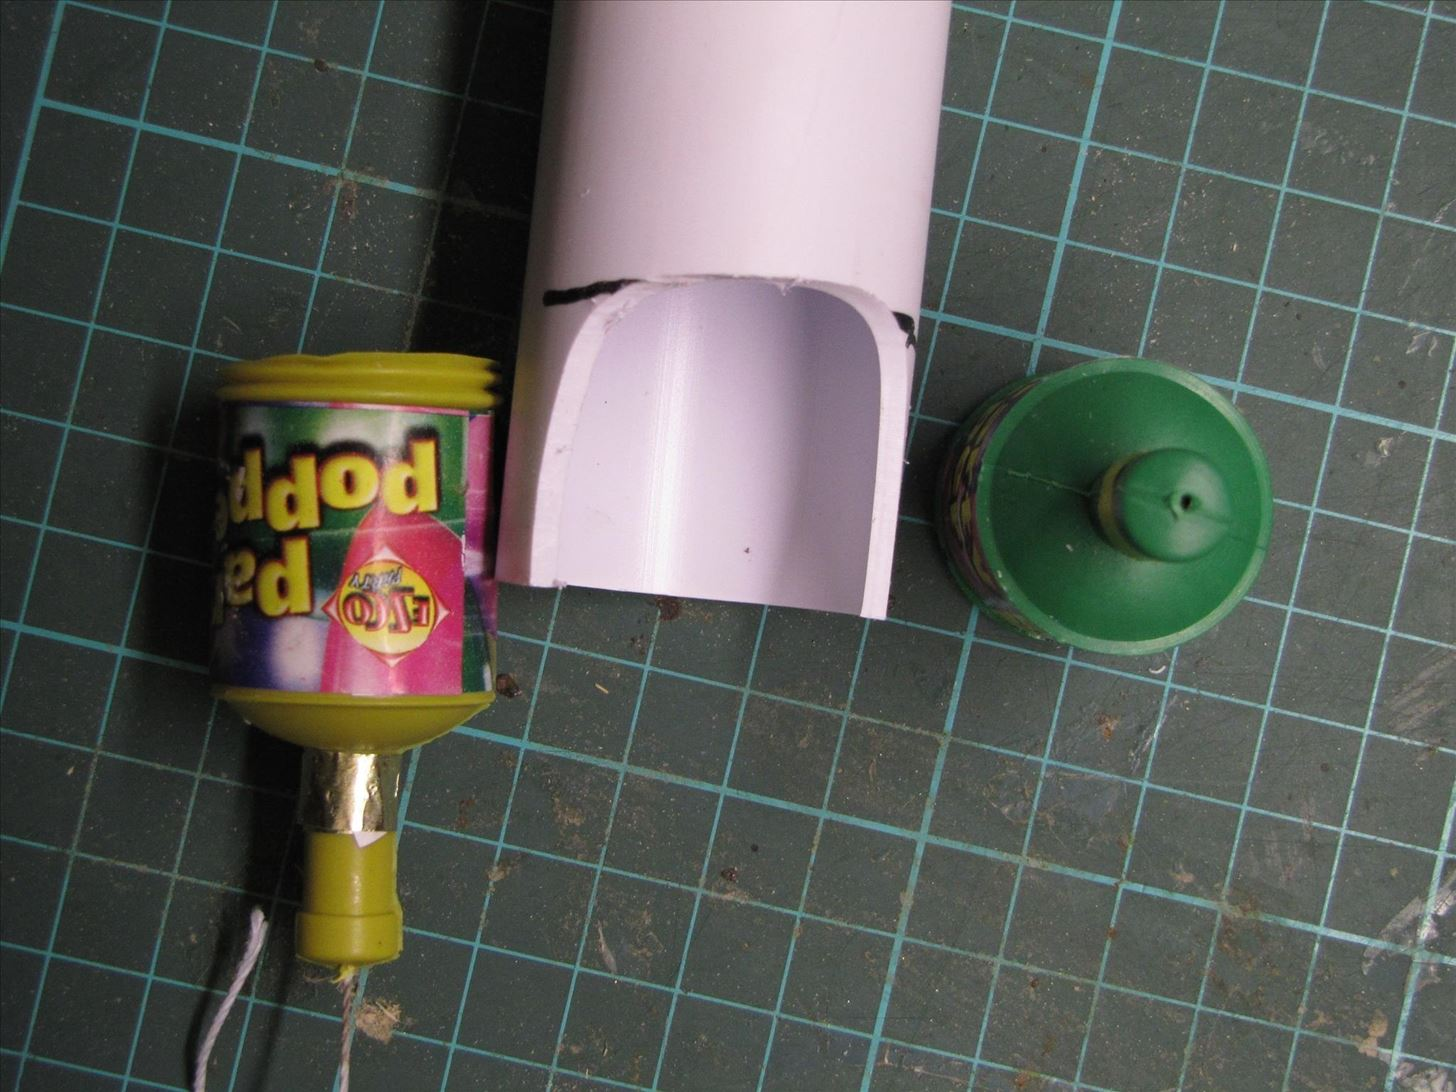 How to Make a Shotfun (A Double-Barrel Shotgun That Shoots Party Poppers)